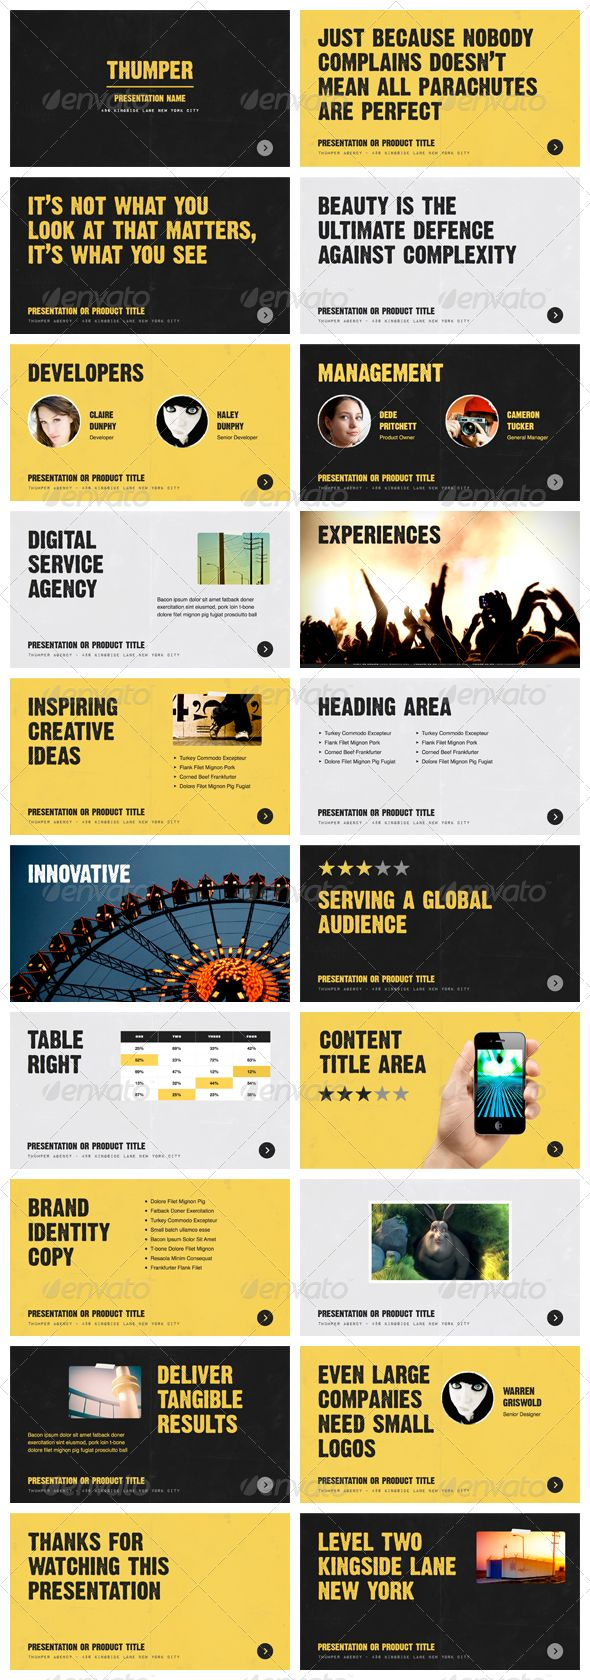 Thumper - Keynote Presentation Template Thumper, agency, awesome, black, bright, contemporary, contrast, creative, designer, furnace, gray, high-contrast, keynote, media, modern, paper, photo, presentation, slide, slide show, vibrant, yellow, Thumper - Keynote Presentation Template